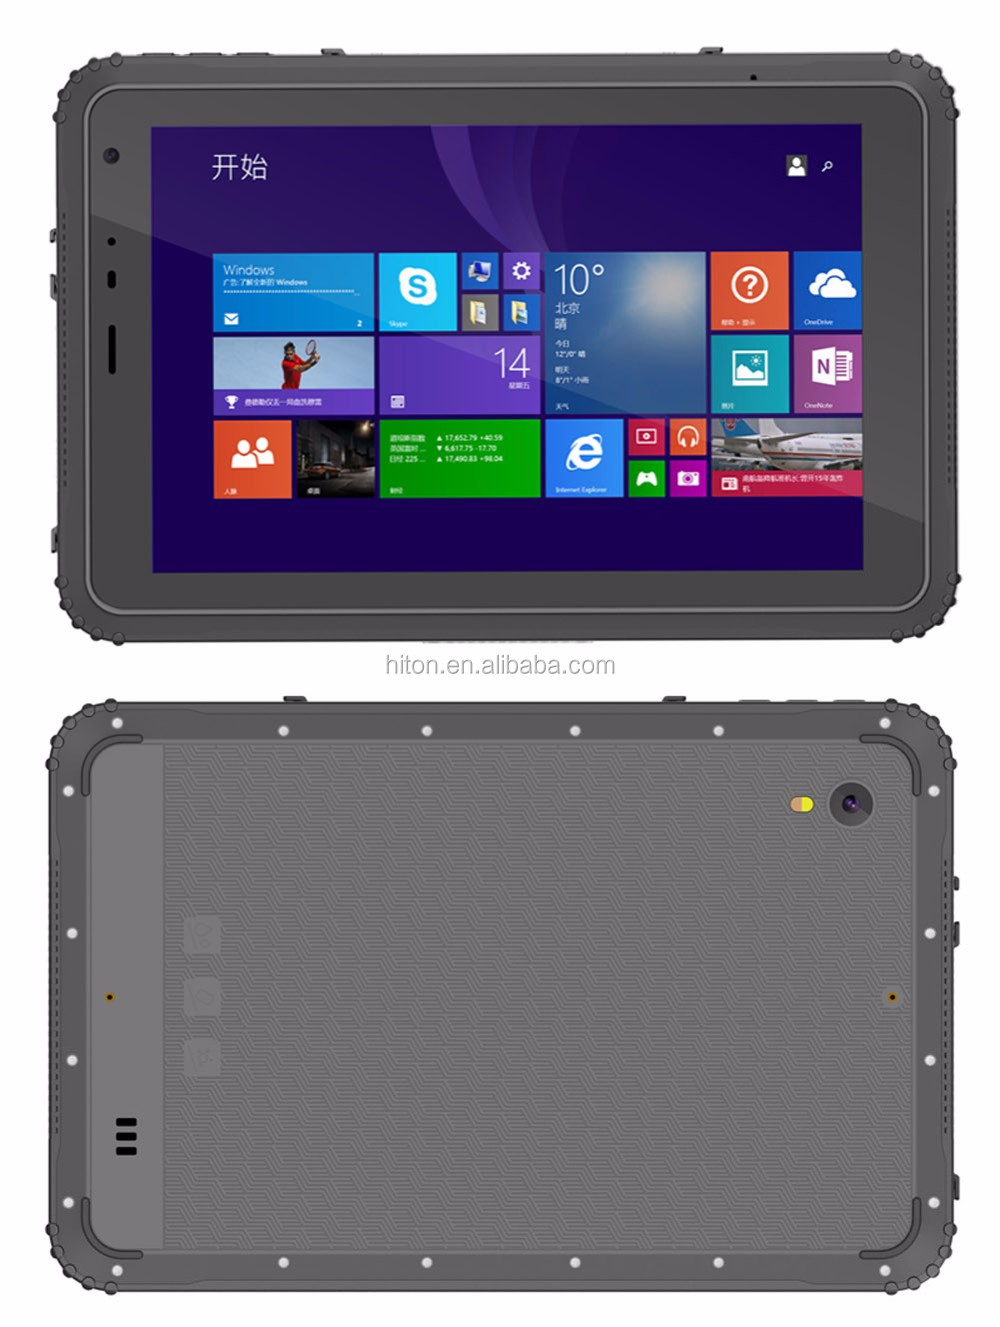 Hignton 8 inch ip67 rugged tablet PC Android 5.1 rugged mobile computer handhelds with NFC